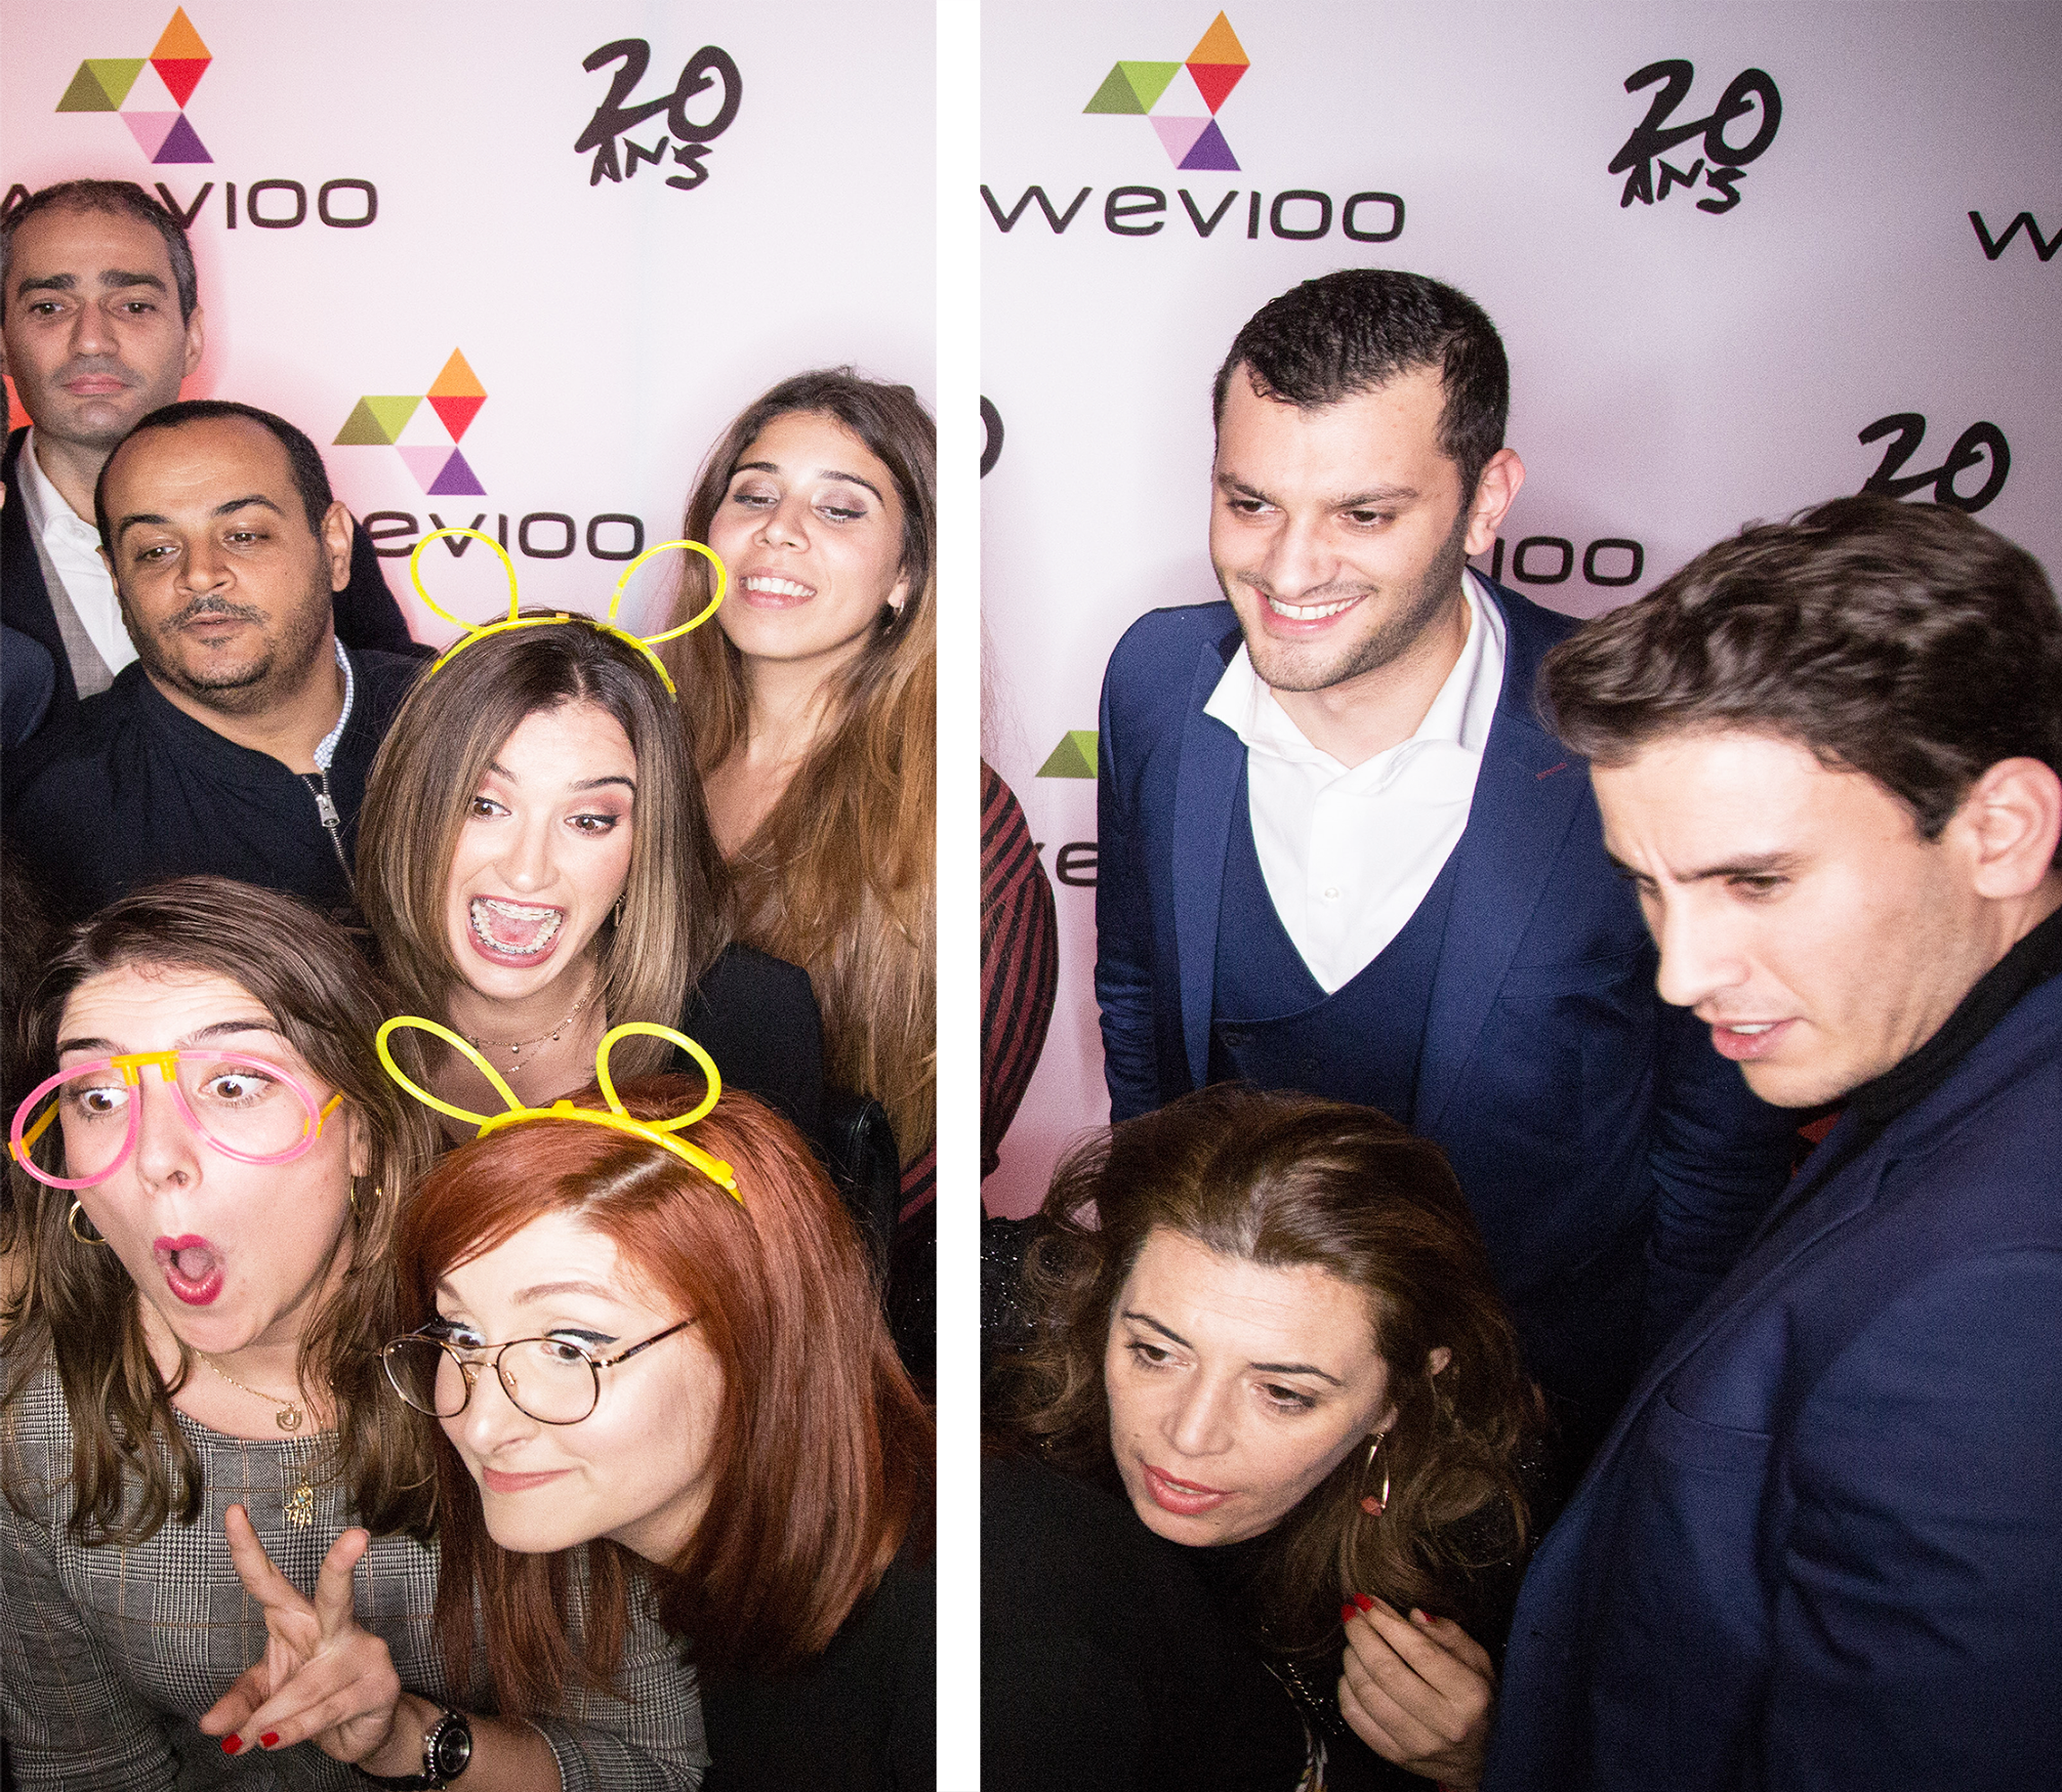 corporate culture  Wevioo 20 YEARS PARTY